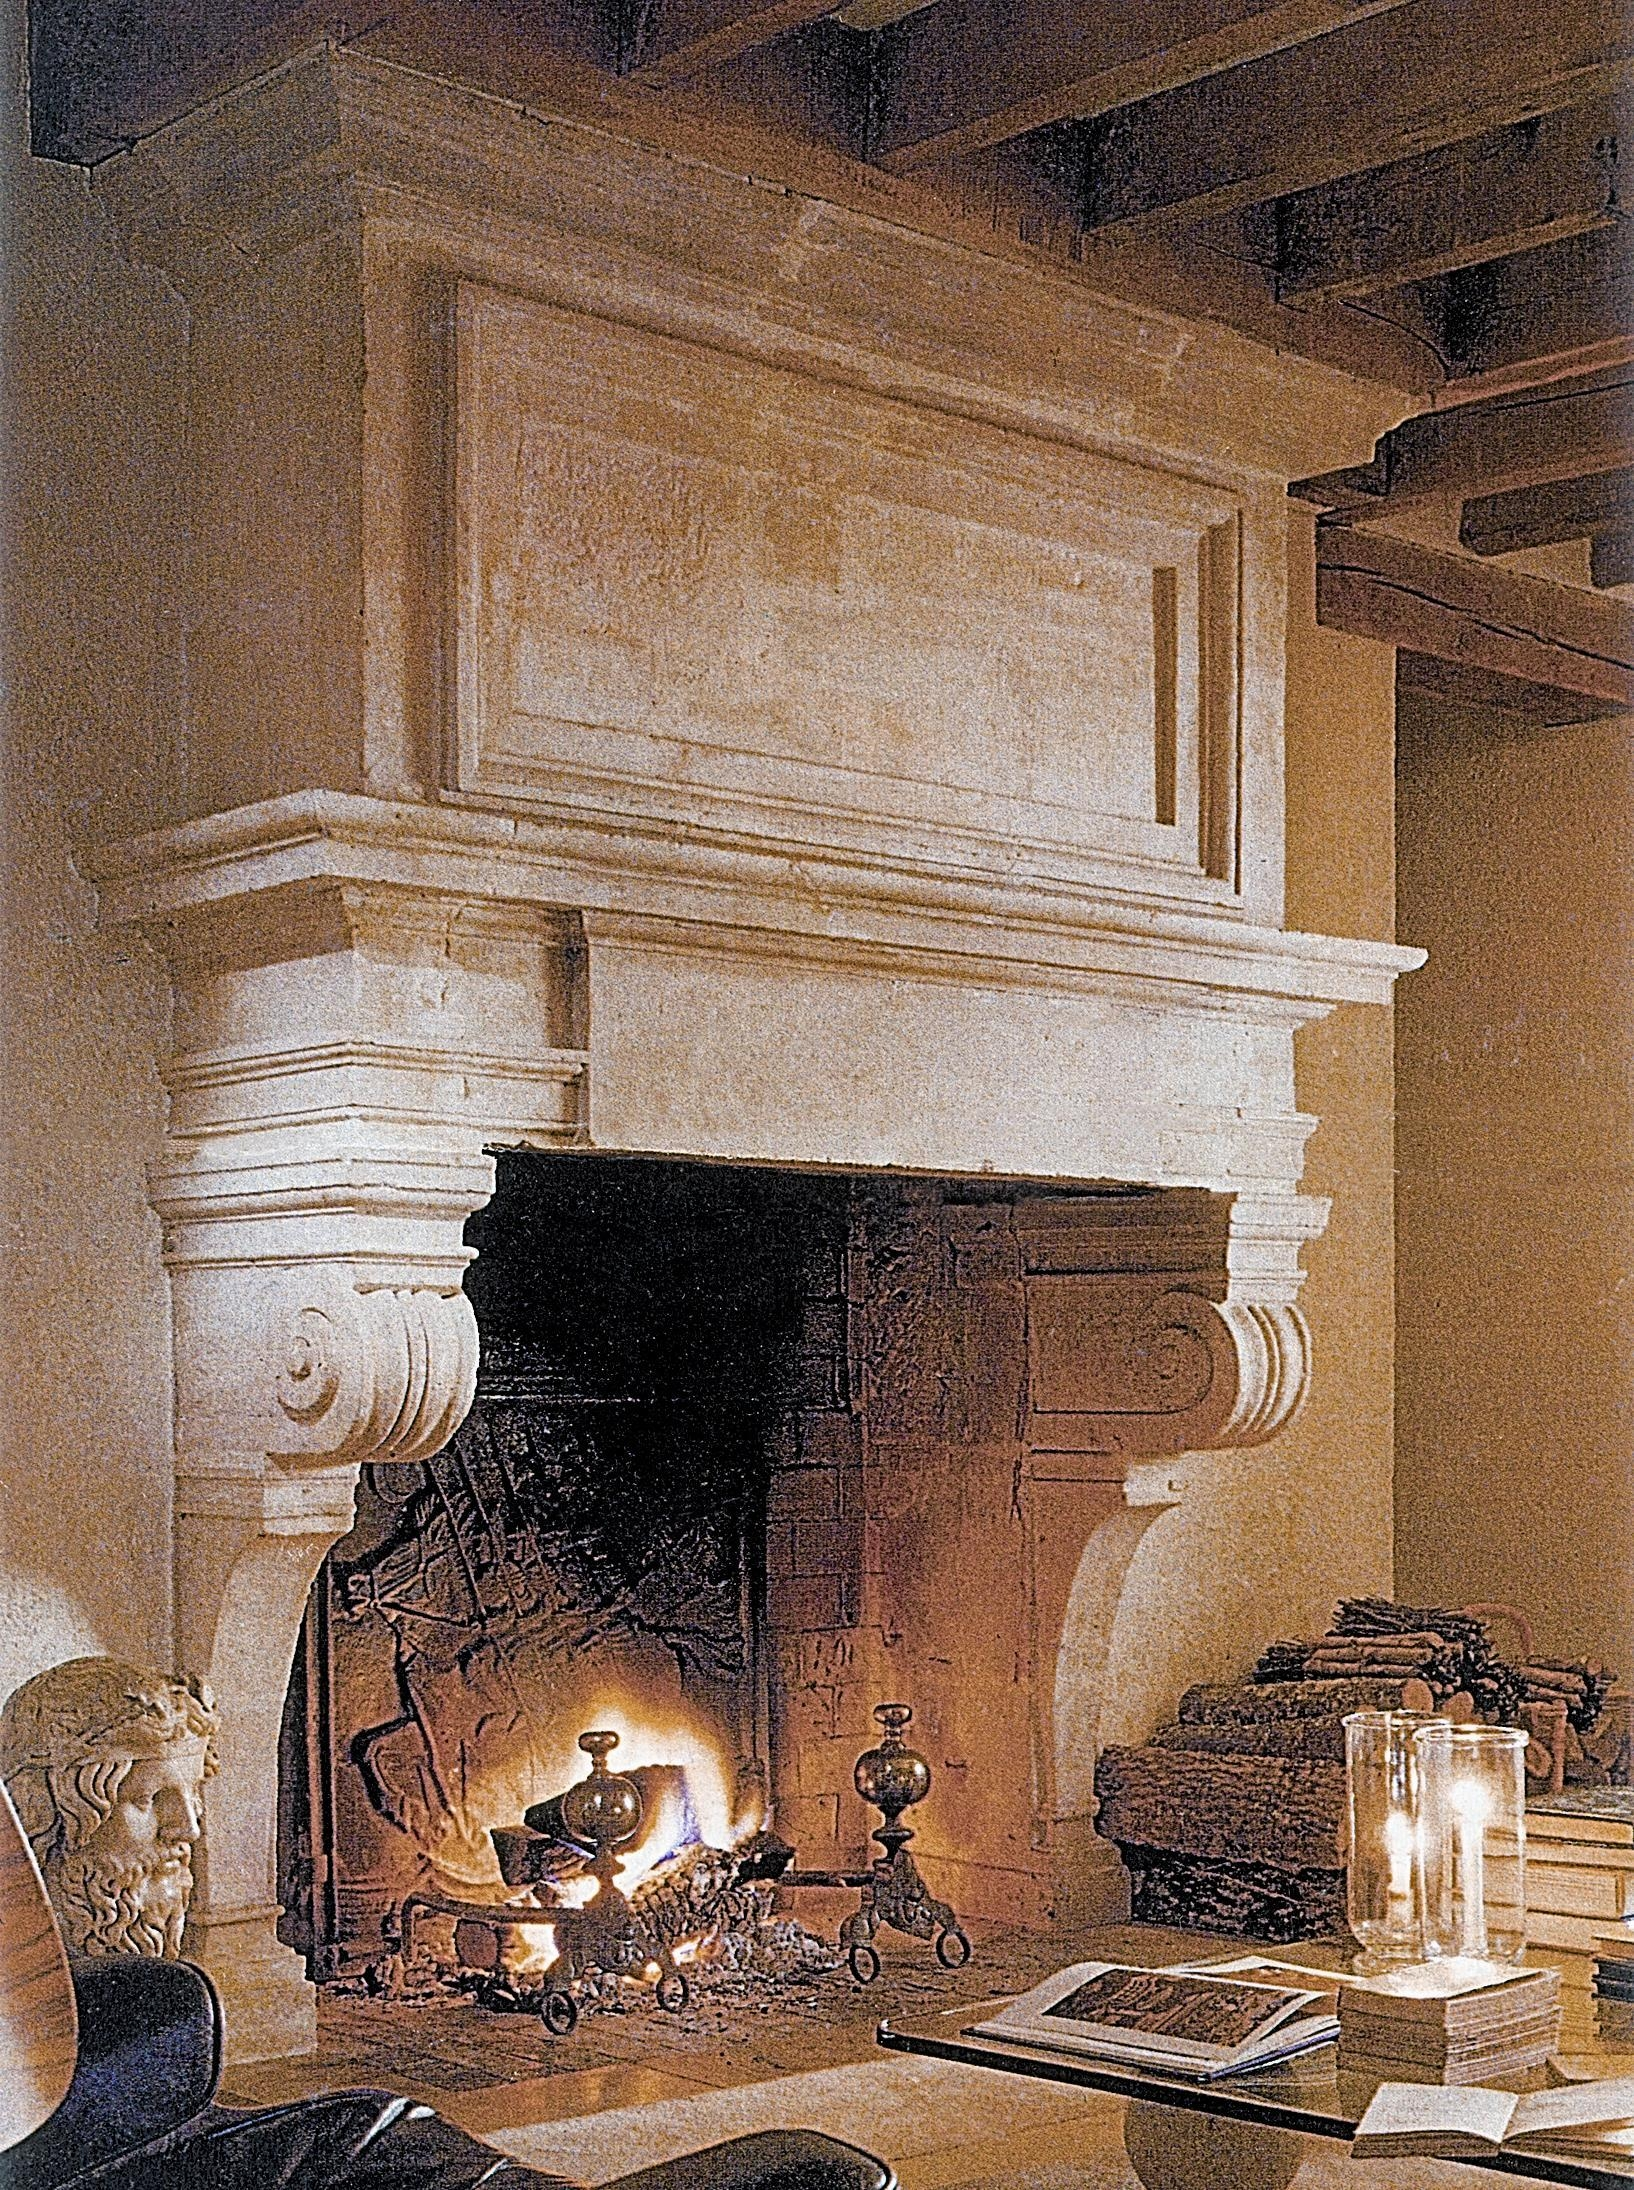 Stone Age Designs' Fireplace Mantels Recreate An Italian With Regard To Italian Renaissance Wall Art (Image 17 of 20)